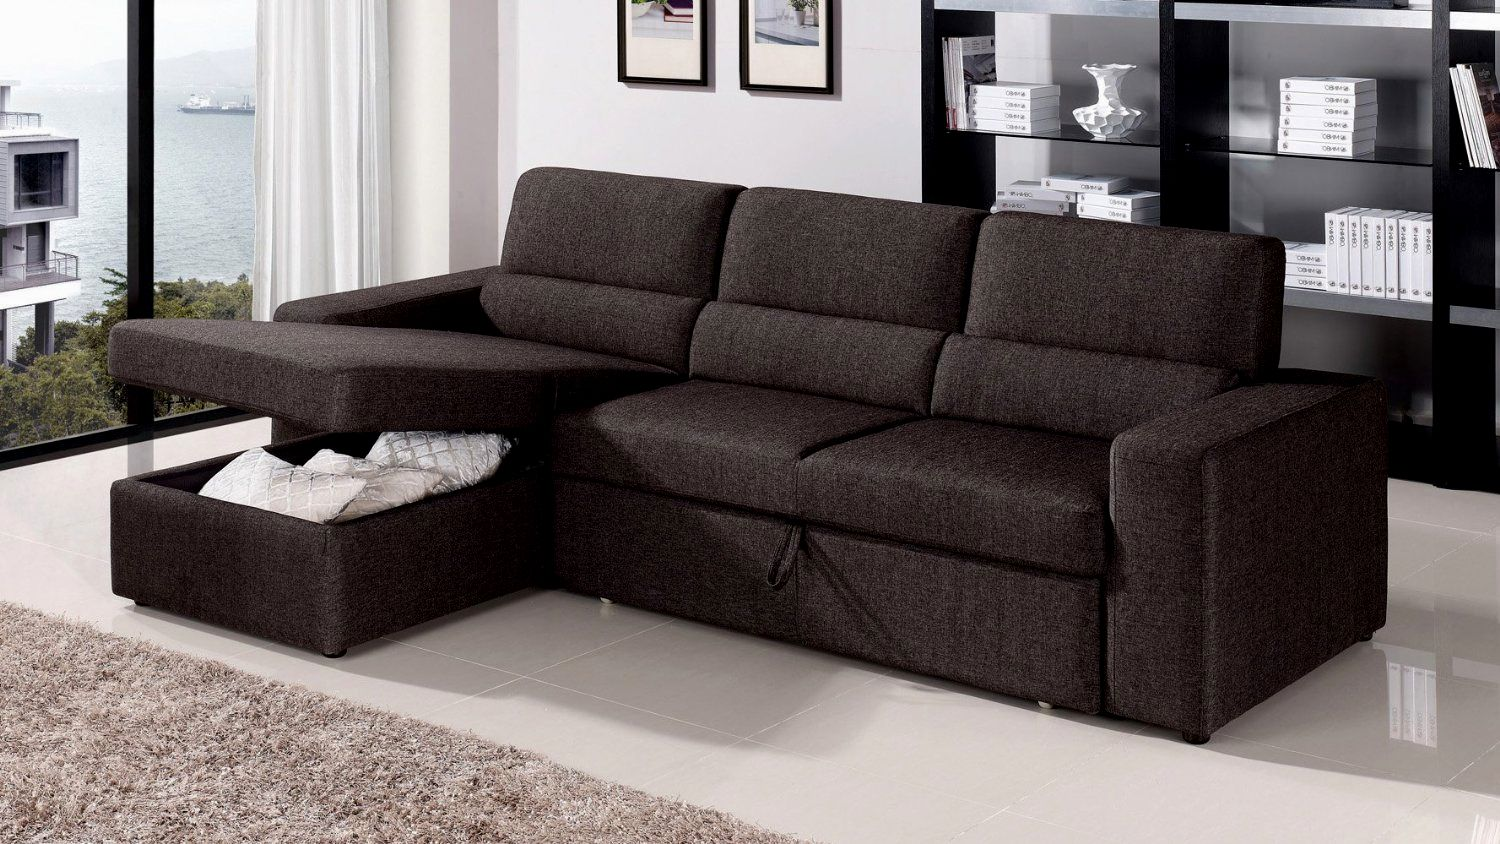 amazing sleeper sofa with chaise gallery-Fancy Sleeper sofa with Chaise Layout